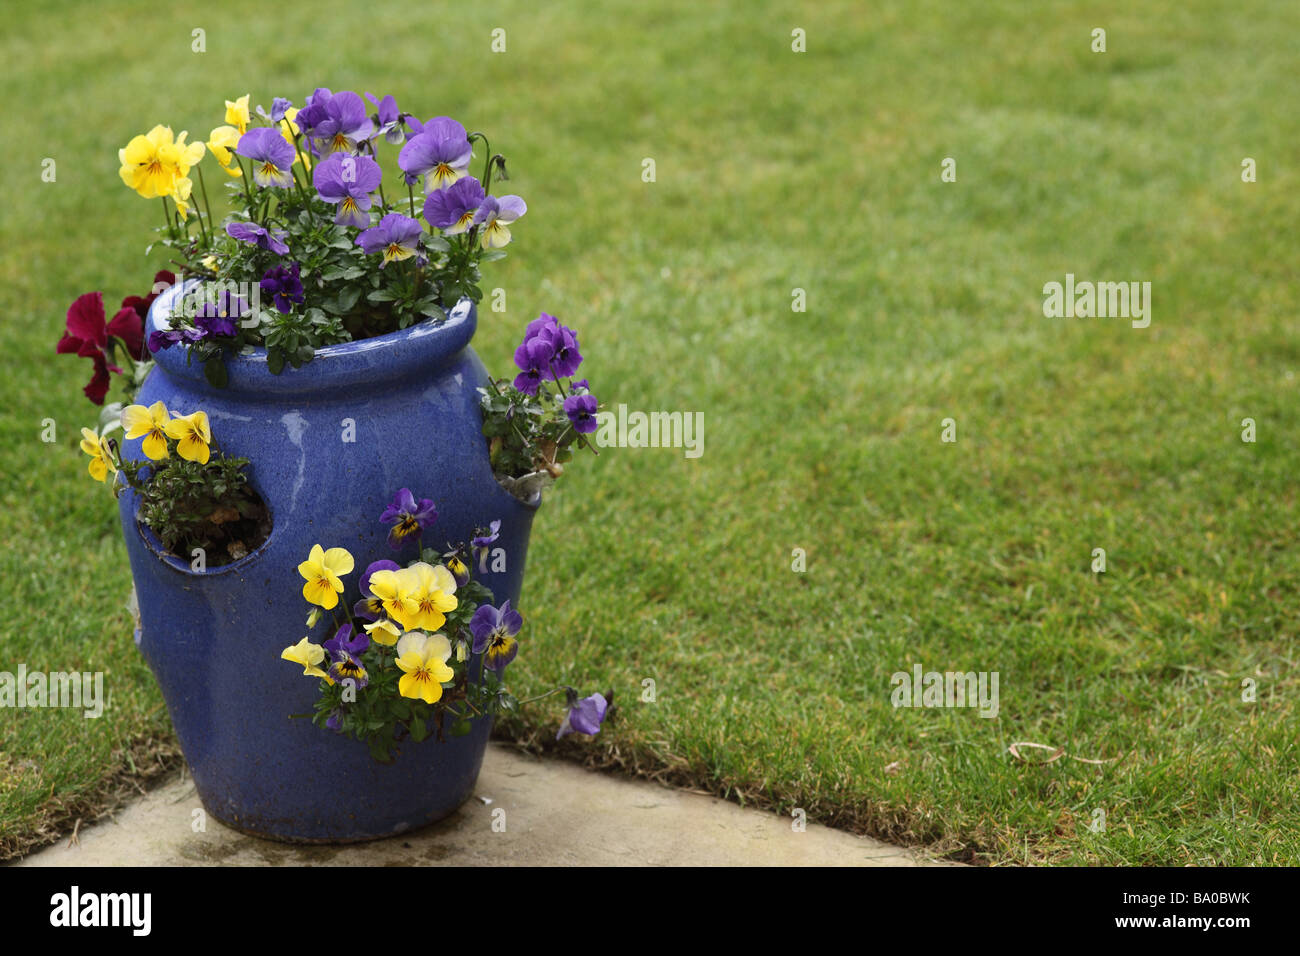 Close up of a blue strawberry pot planted with viola on the edge of a garden lawn in England - Stock Image